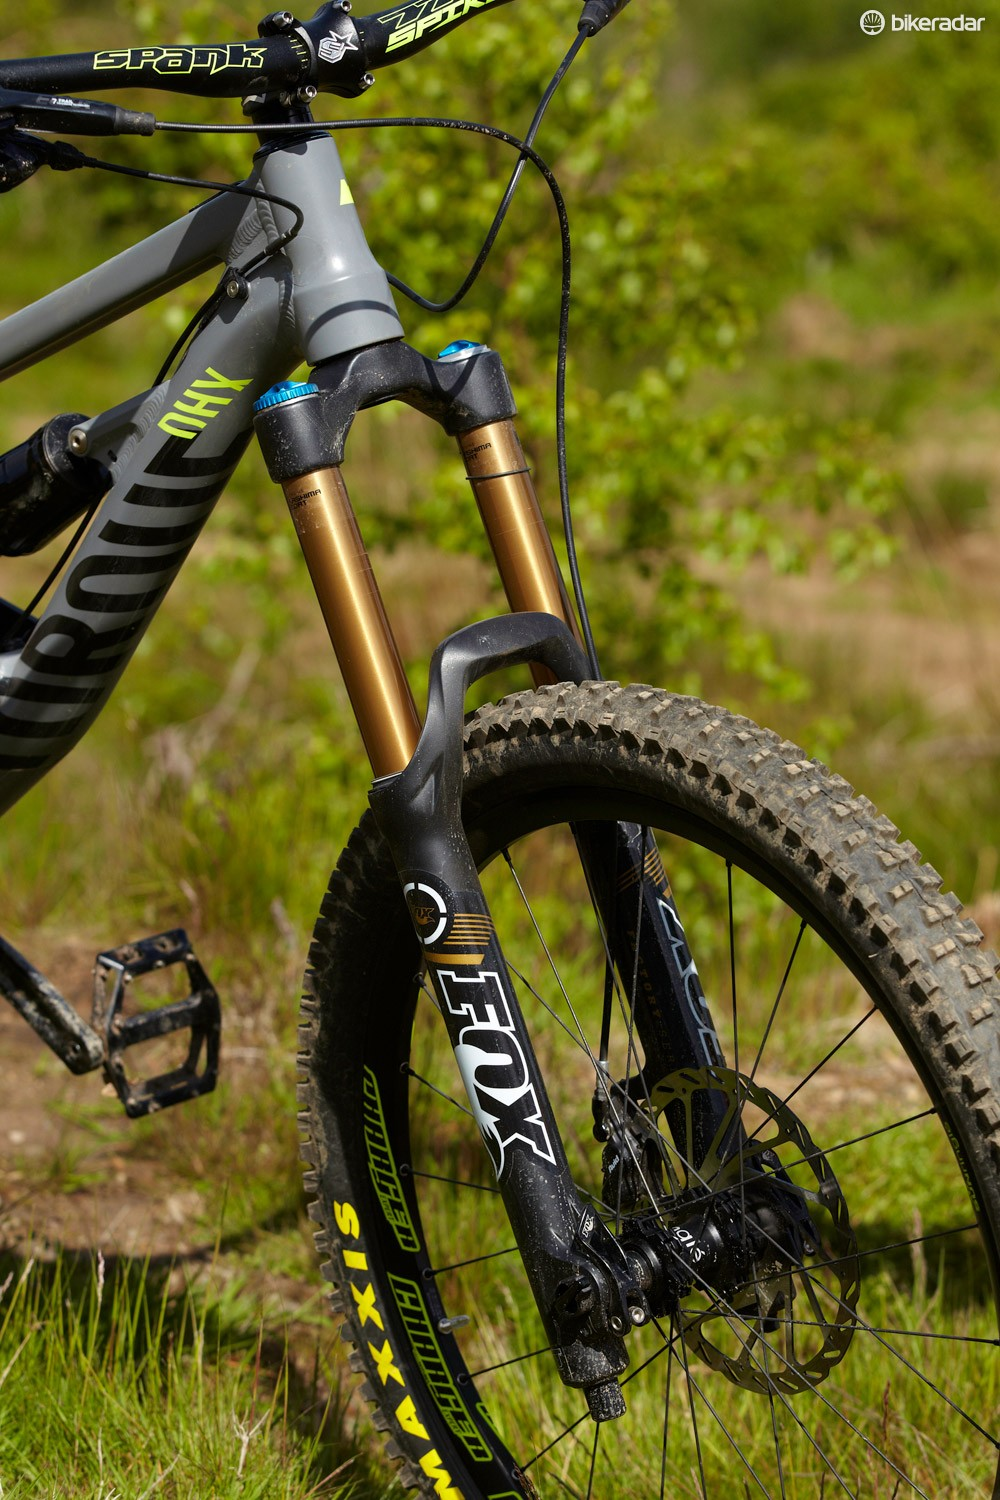 The Fox 36 is a well damped, solid feeling fork that's well up to the job despite not having twin crowns